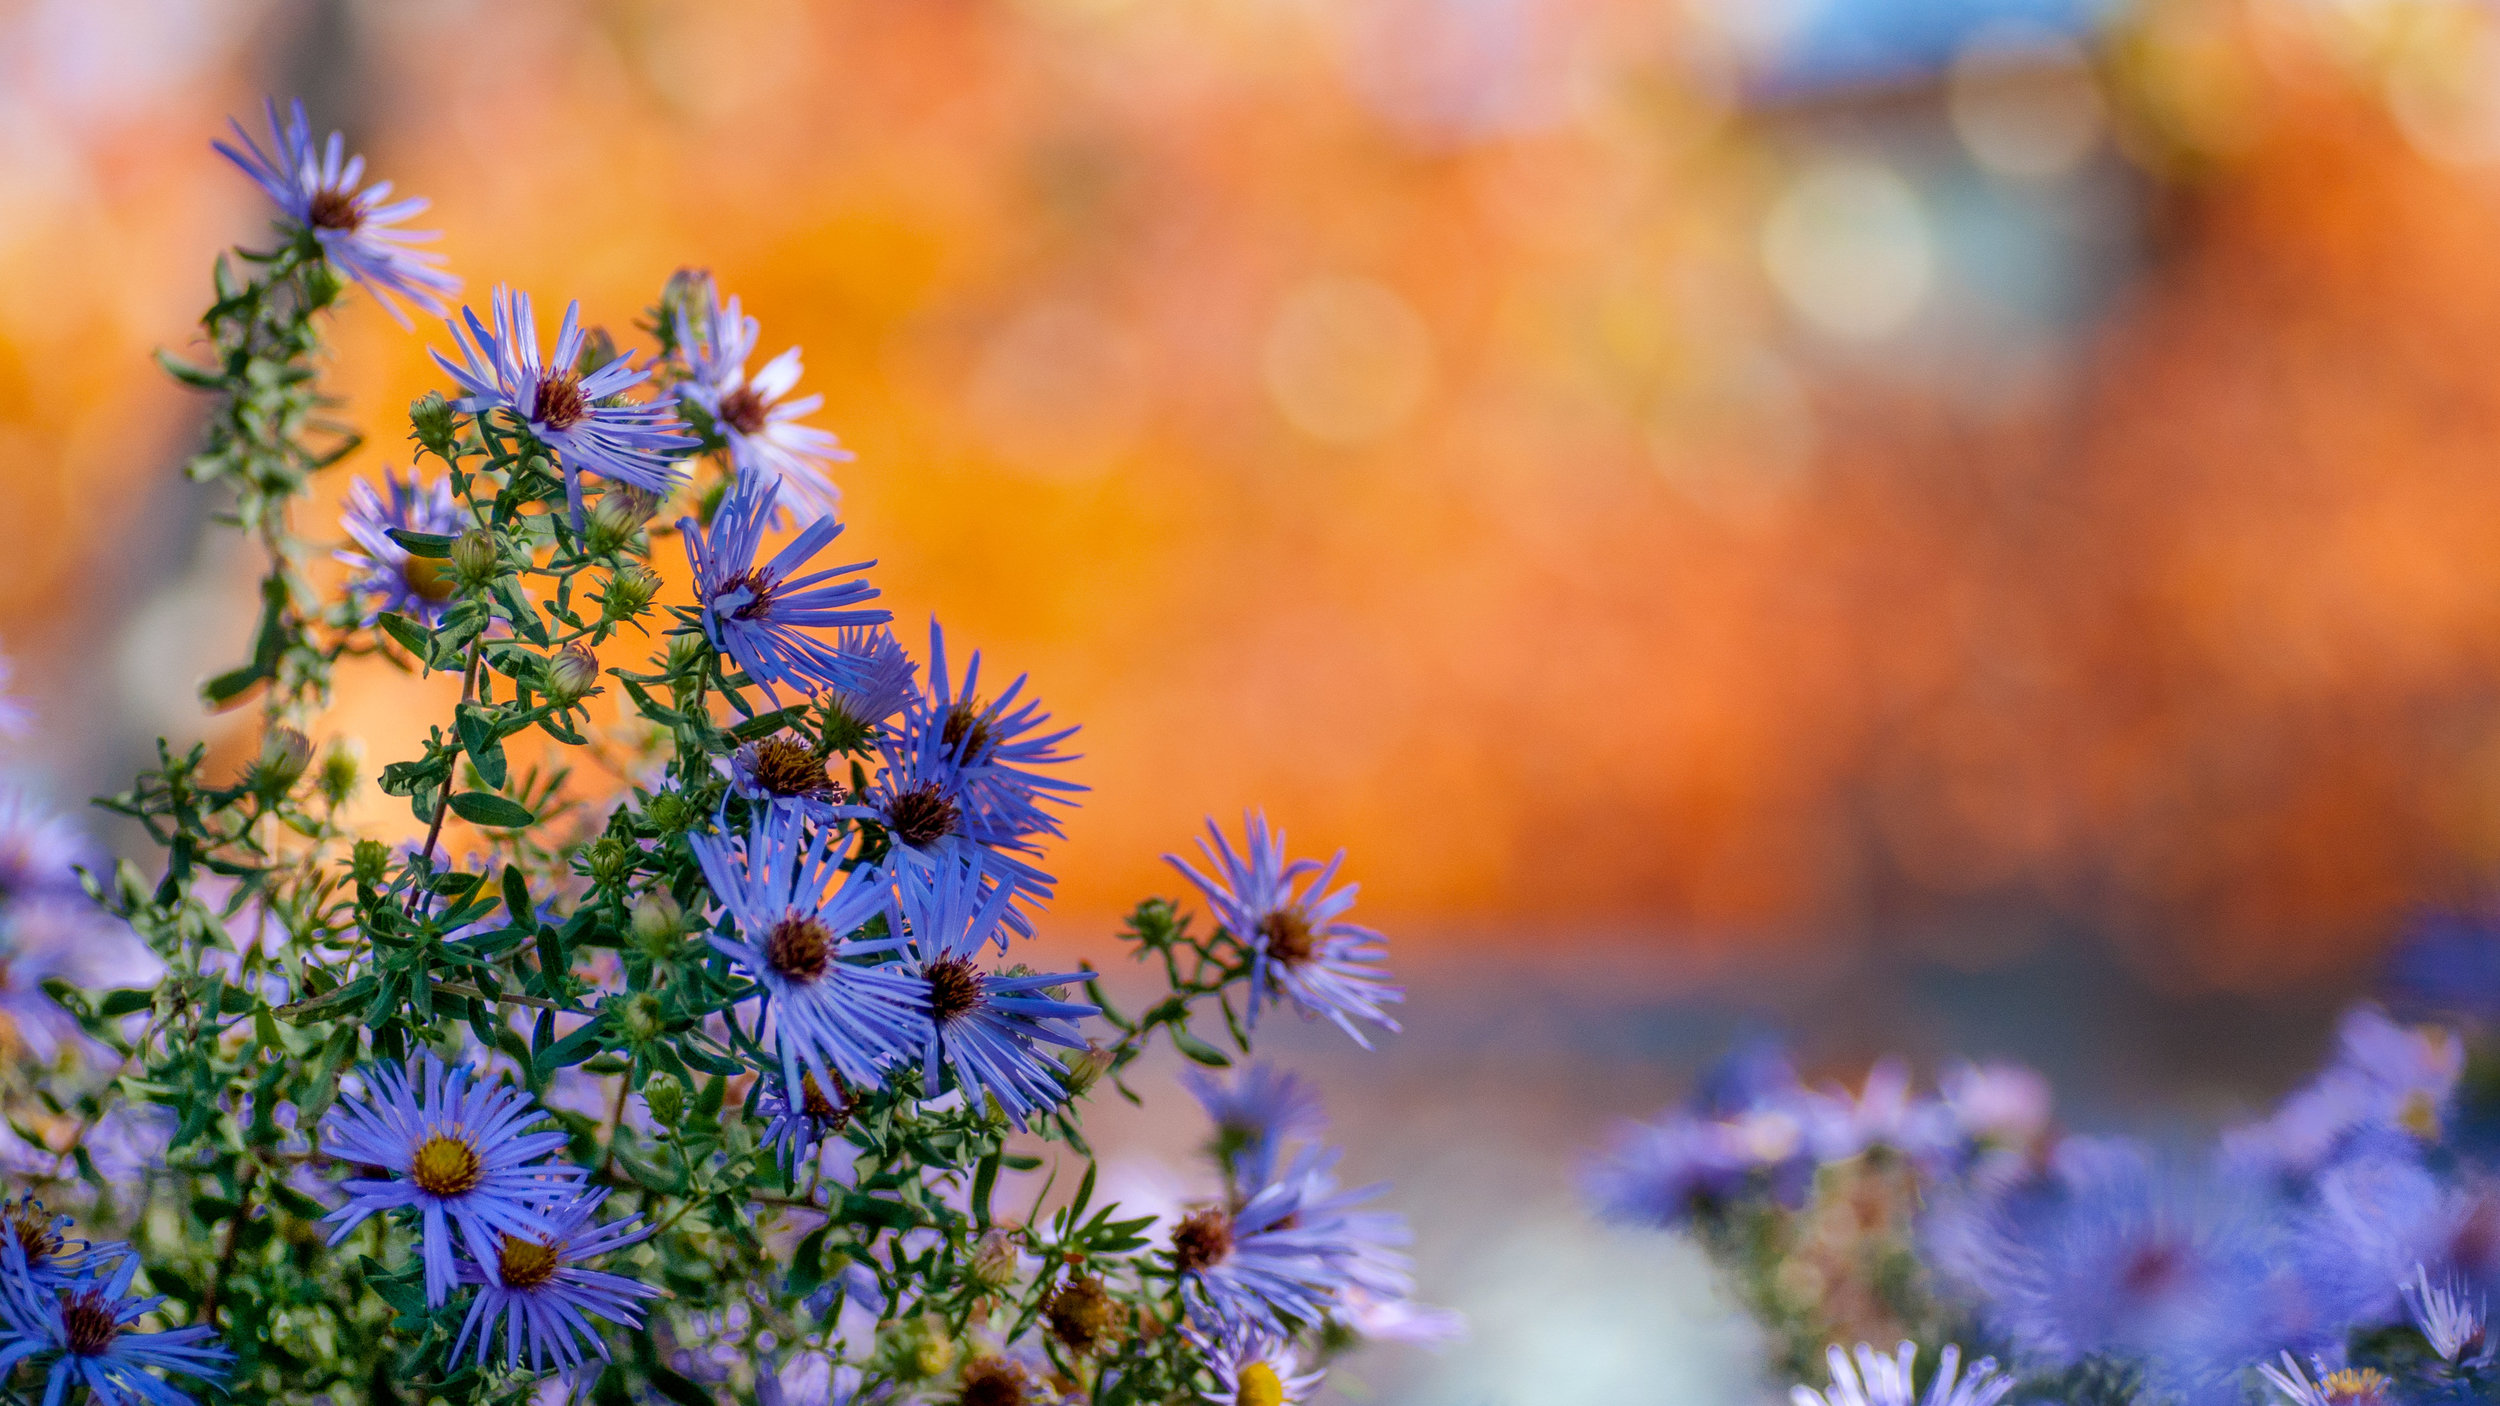 The bright, colourful background really makes this picture of these flowers much more eye catching.